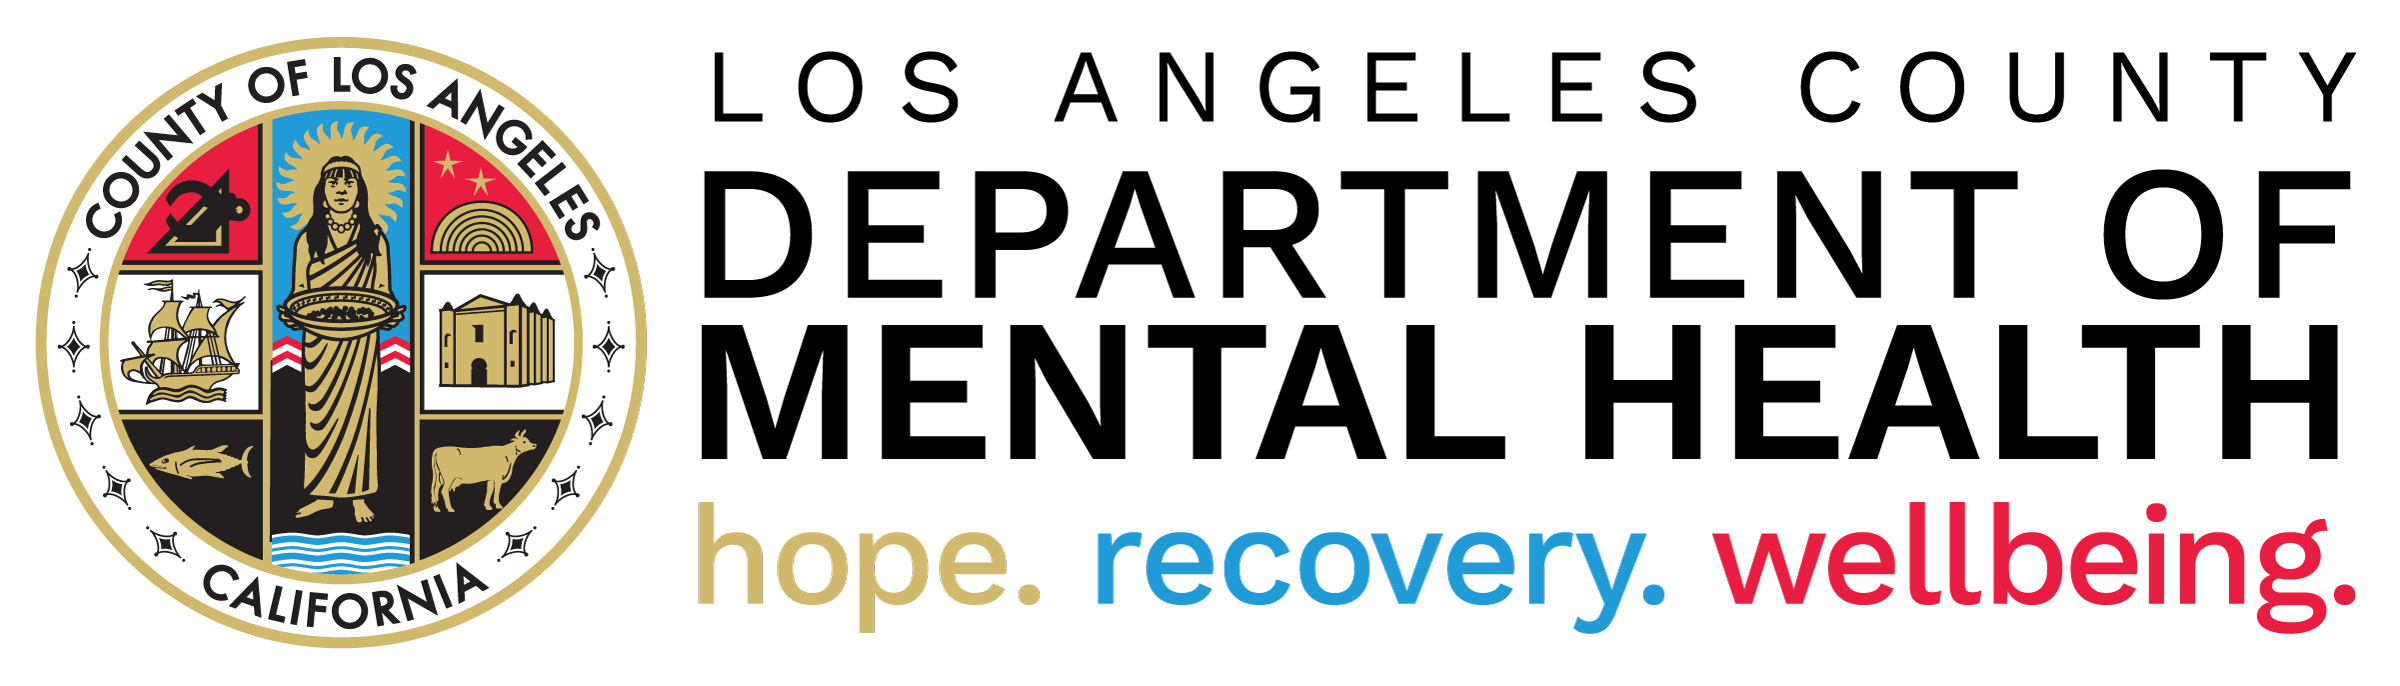 Los Angeles County Dept. Mental Health